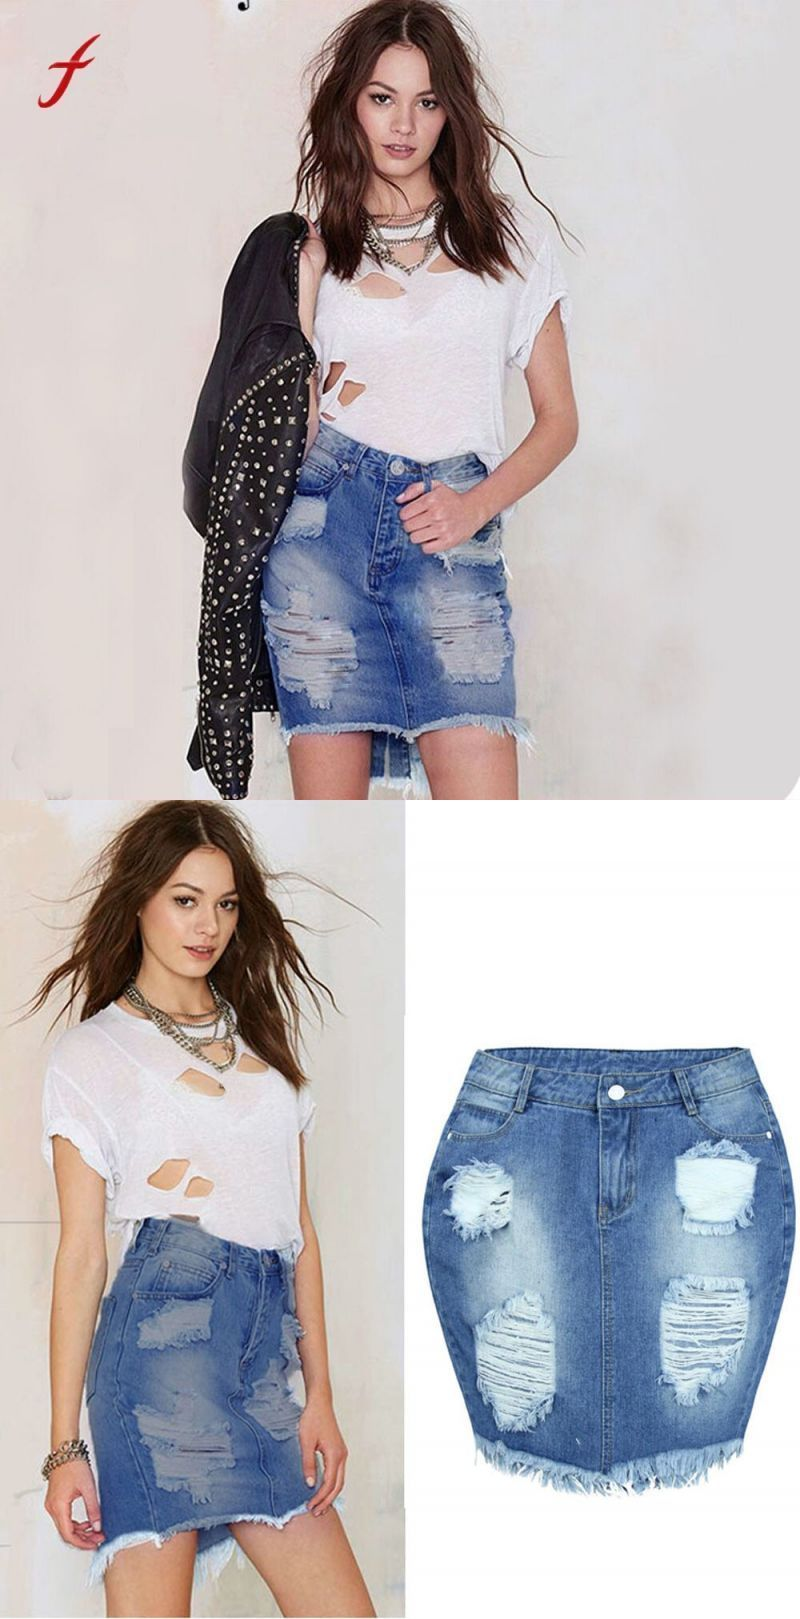 ef425c352f4d Brand jeans skirt 2018 spring summer women denim skirt jeans female high  waist ripped vintage skinny